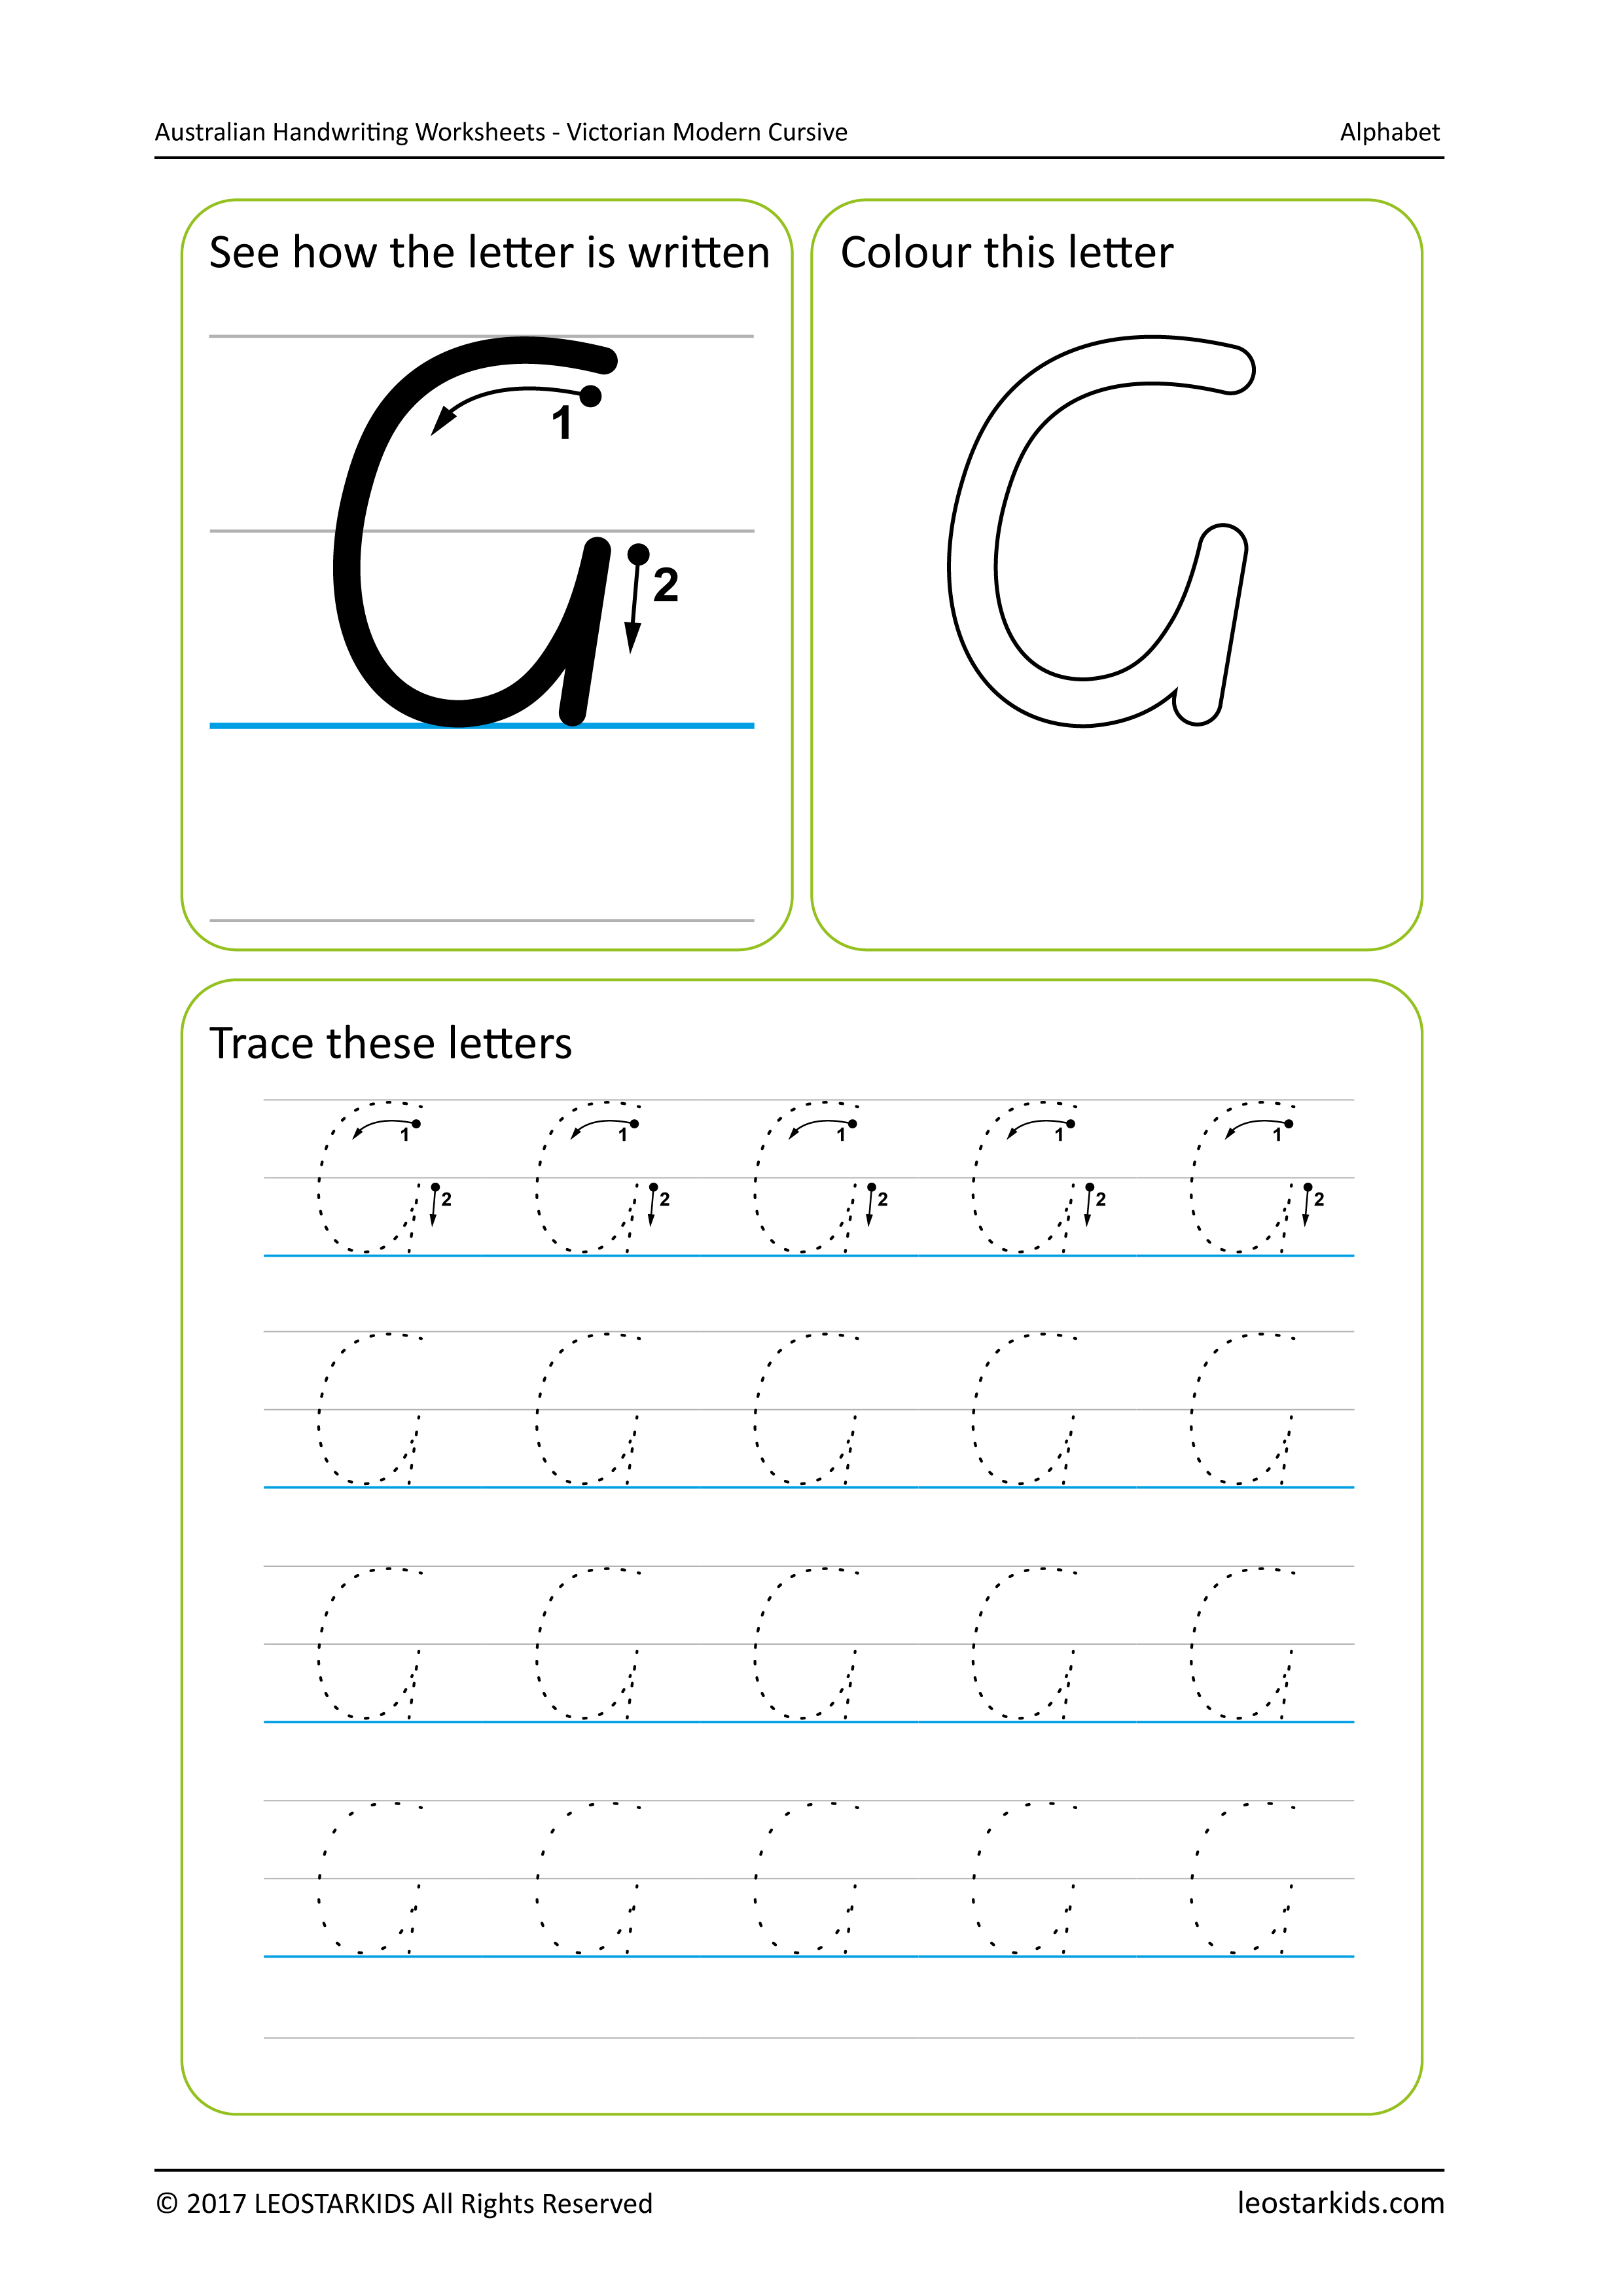 Victorian writing alphabet worksheets